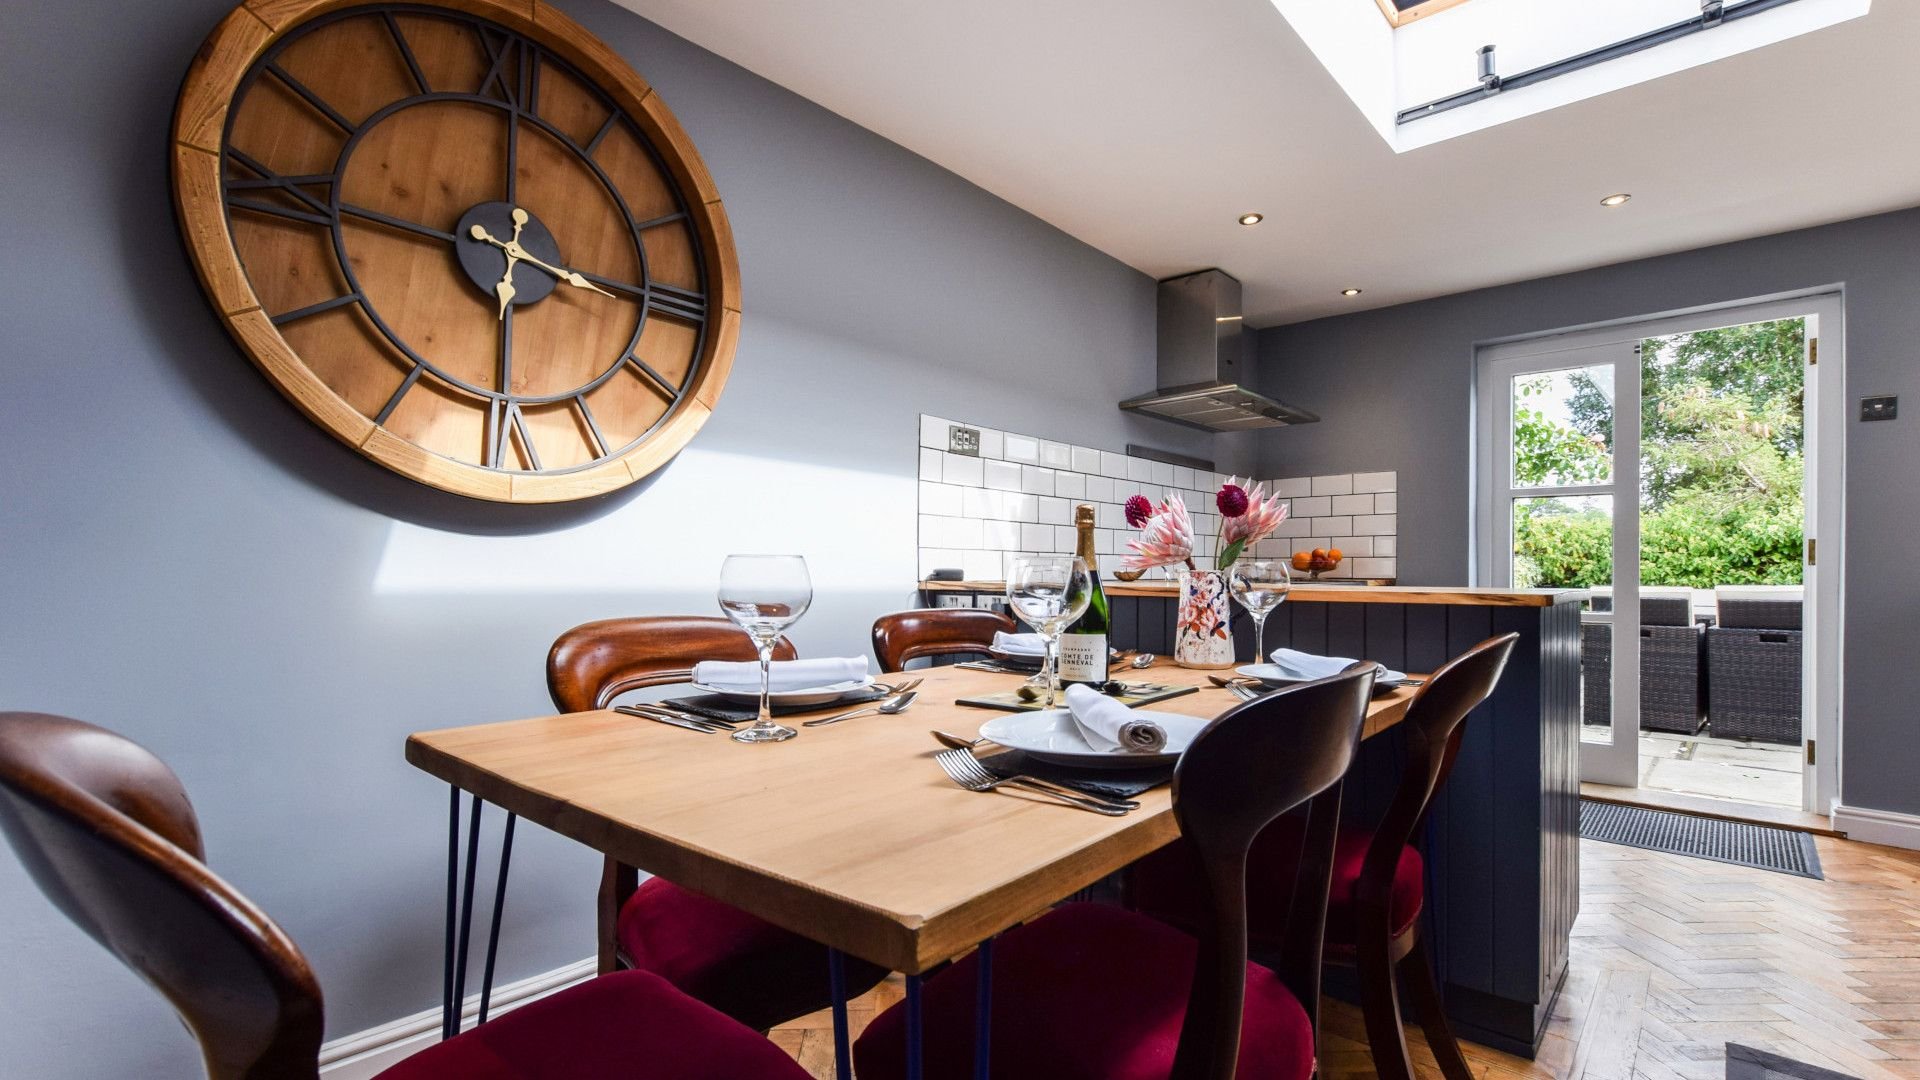 Kitchen-diner with dining table,  27 Horsefair, Bolthole Retreats